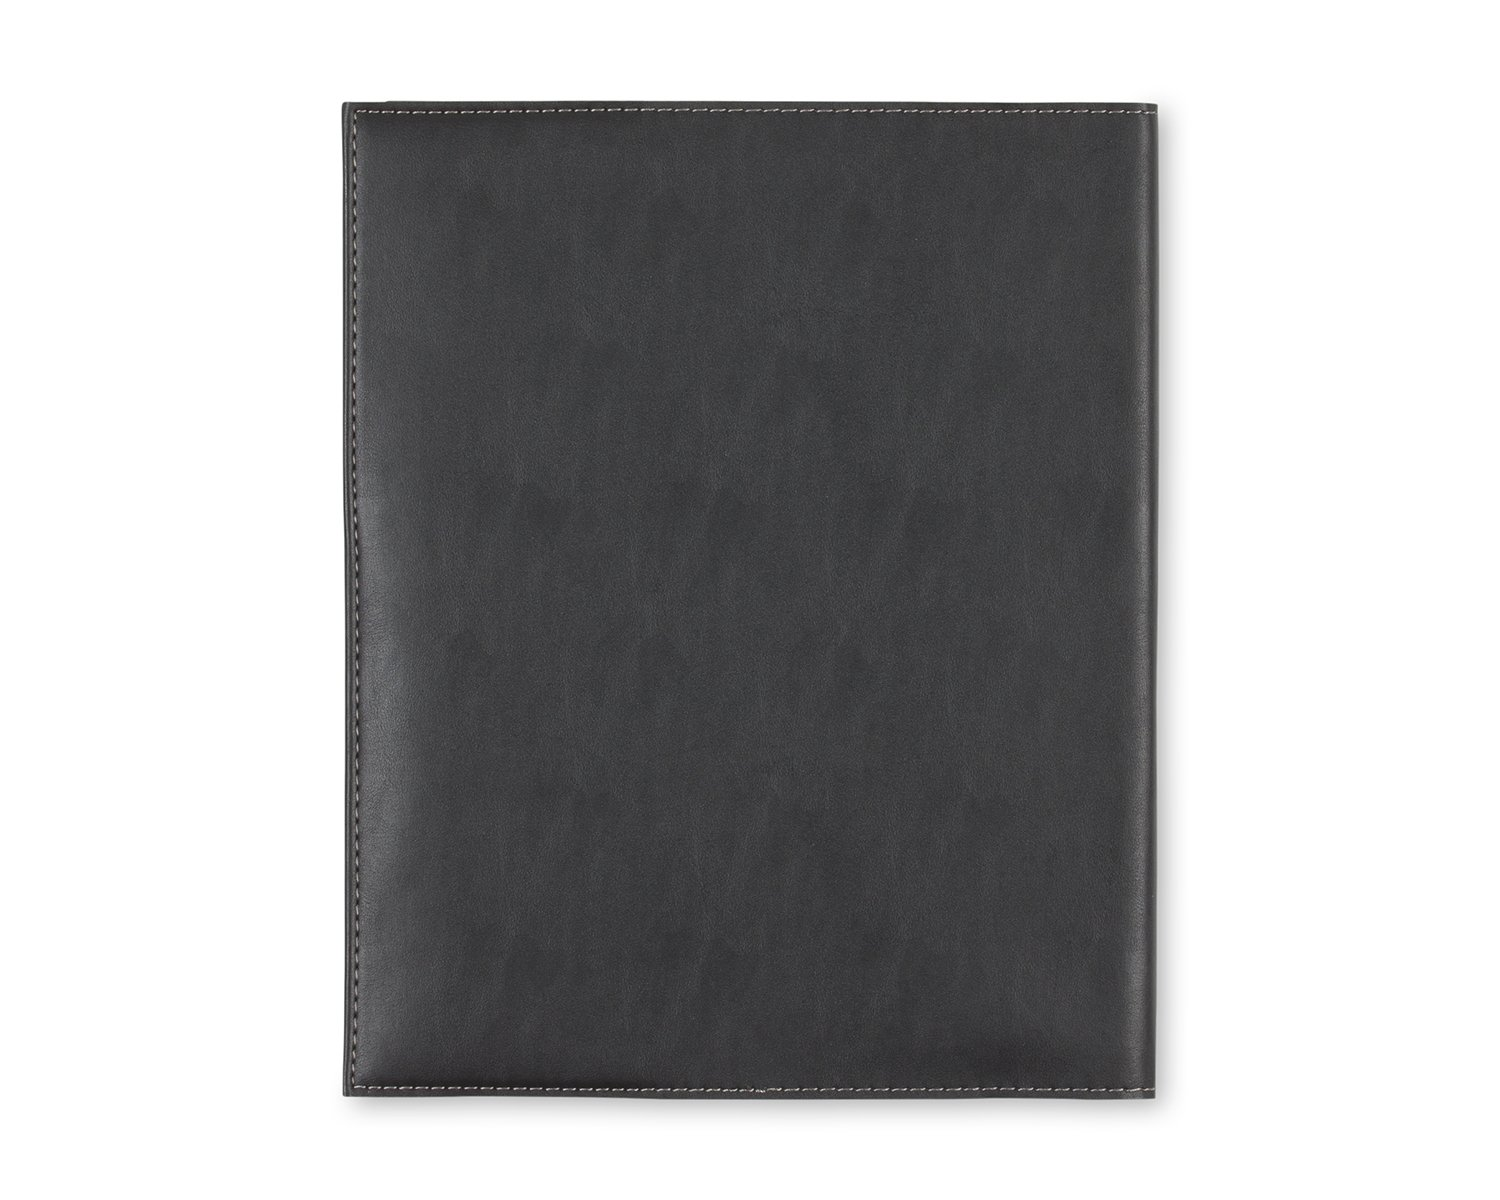 Blue Sky Professional Notebook, Leather-Like Textured Cover, Twin-Wire Binding, 8.5'' x 11'', Black by Blue Sky (Image #4)